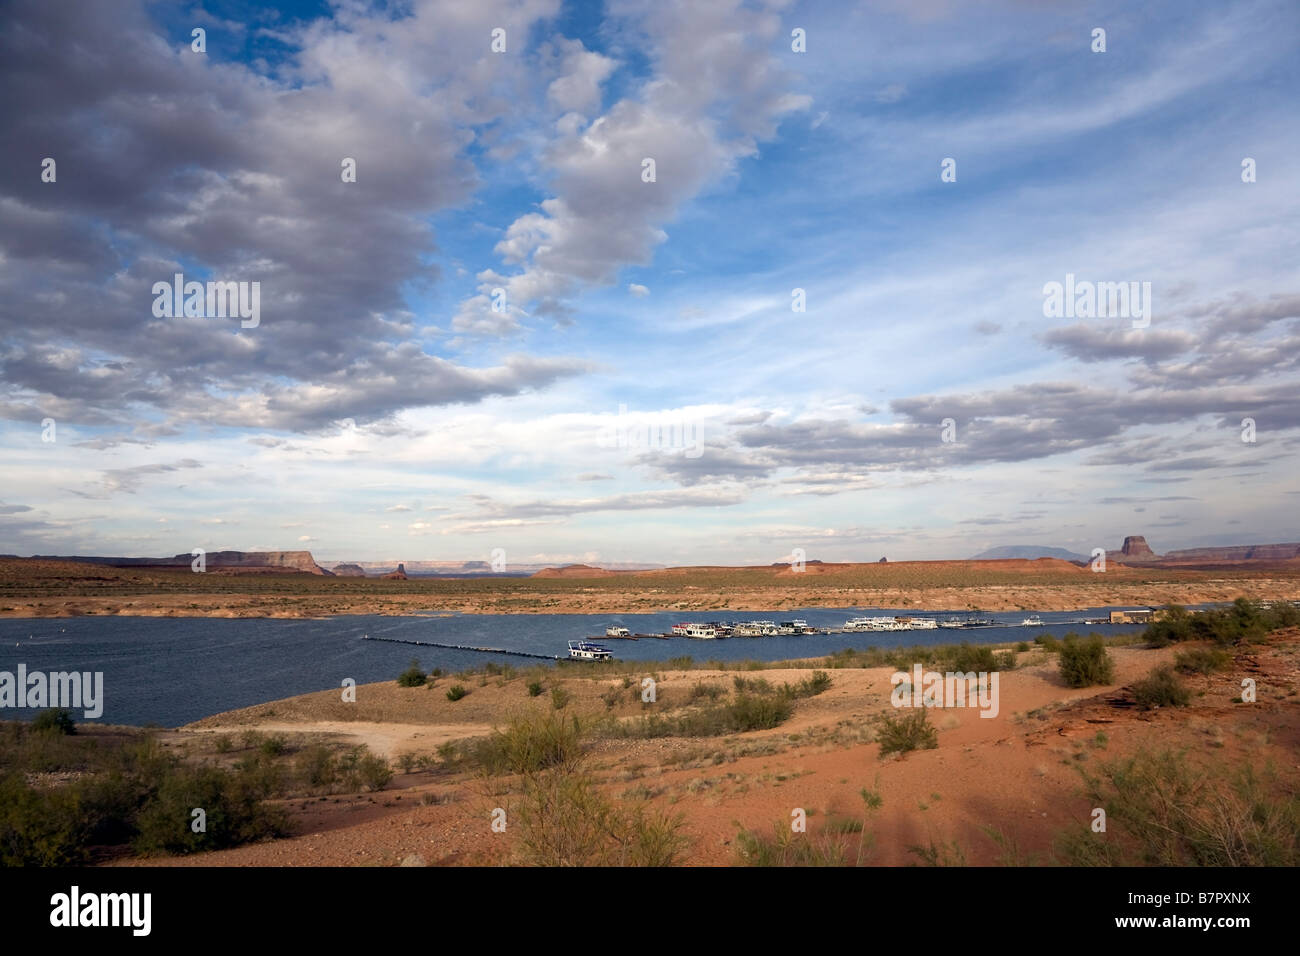 Recreation are with boats on Lake Powell near Page in Arizona, USA Stock Photo